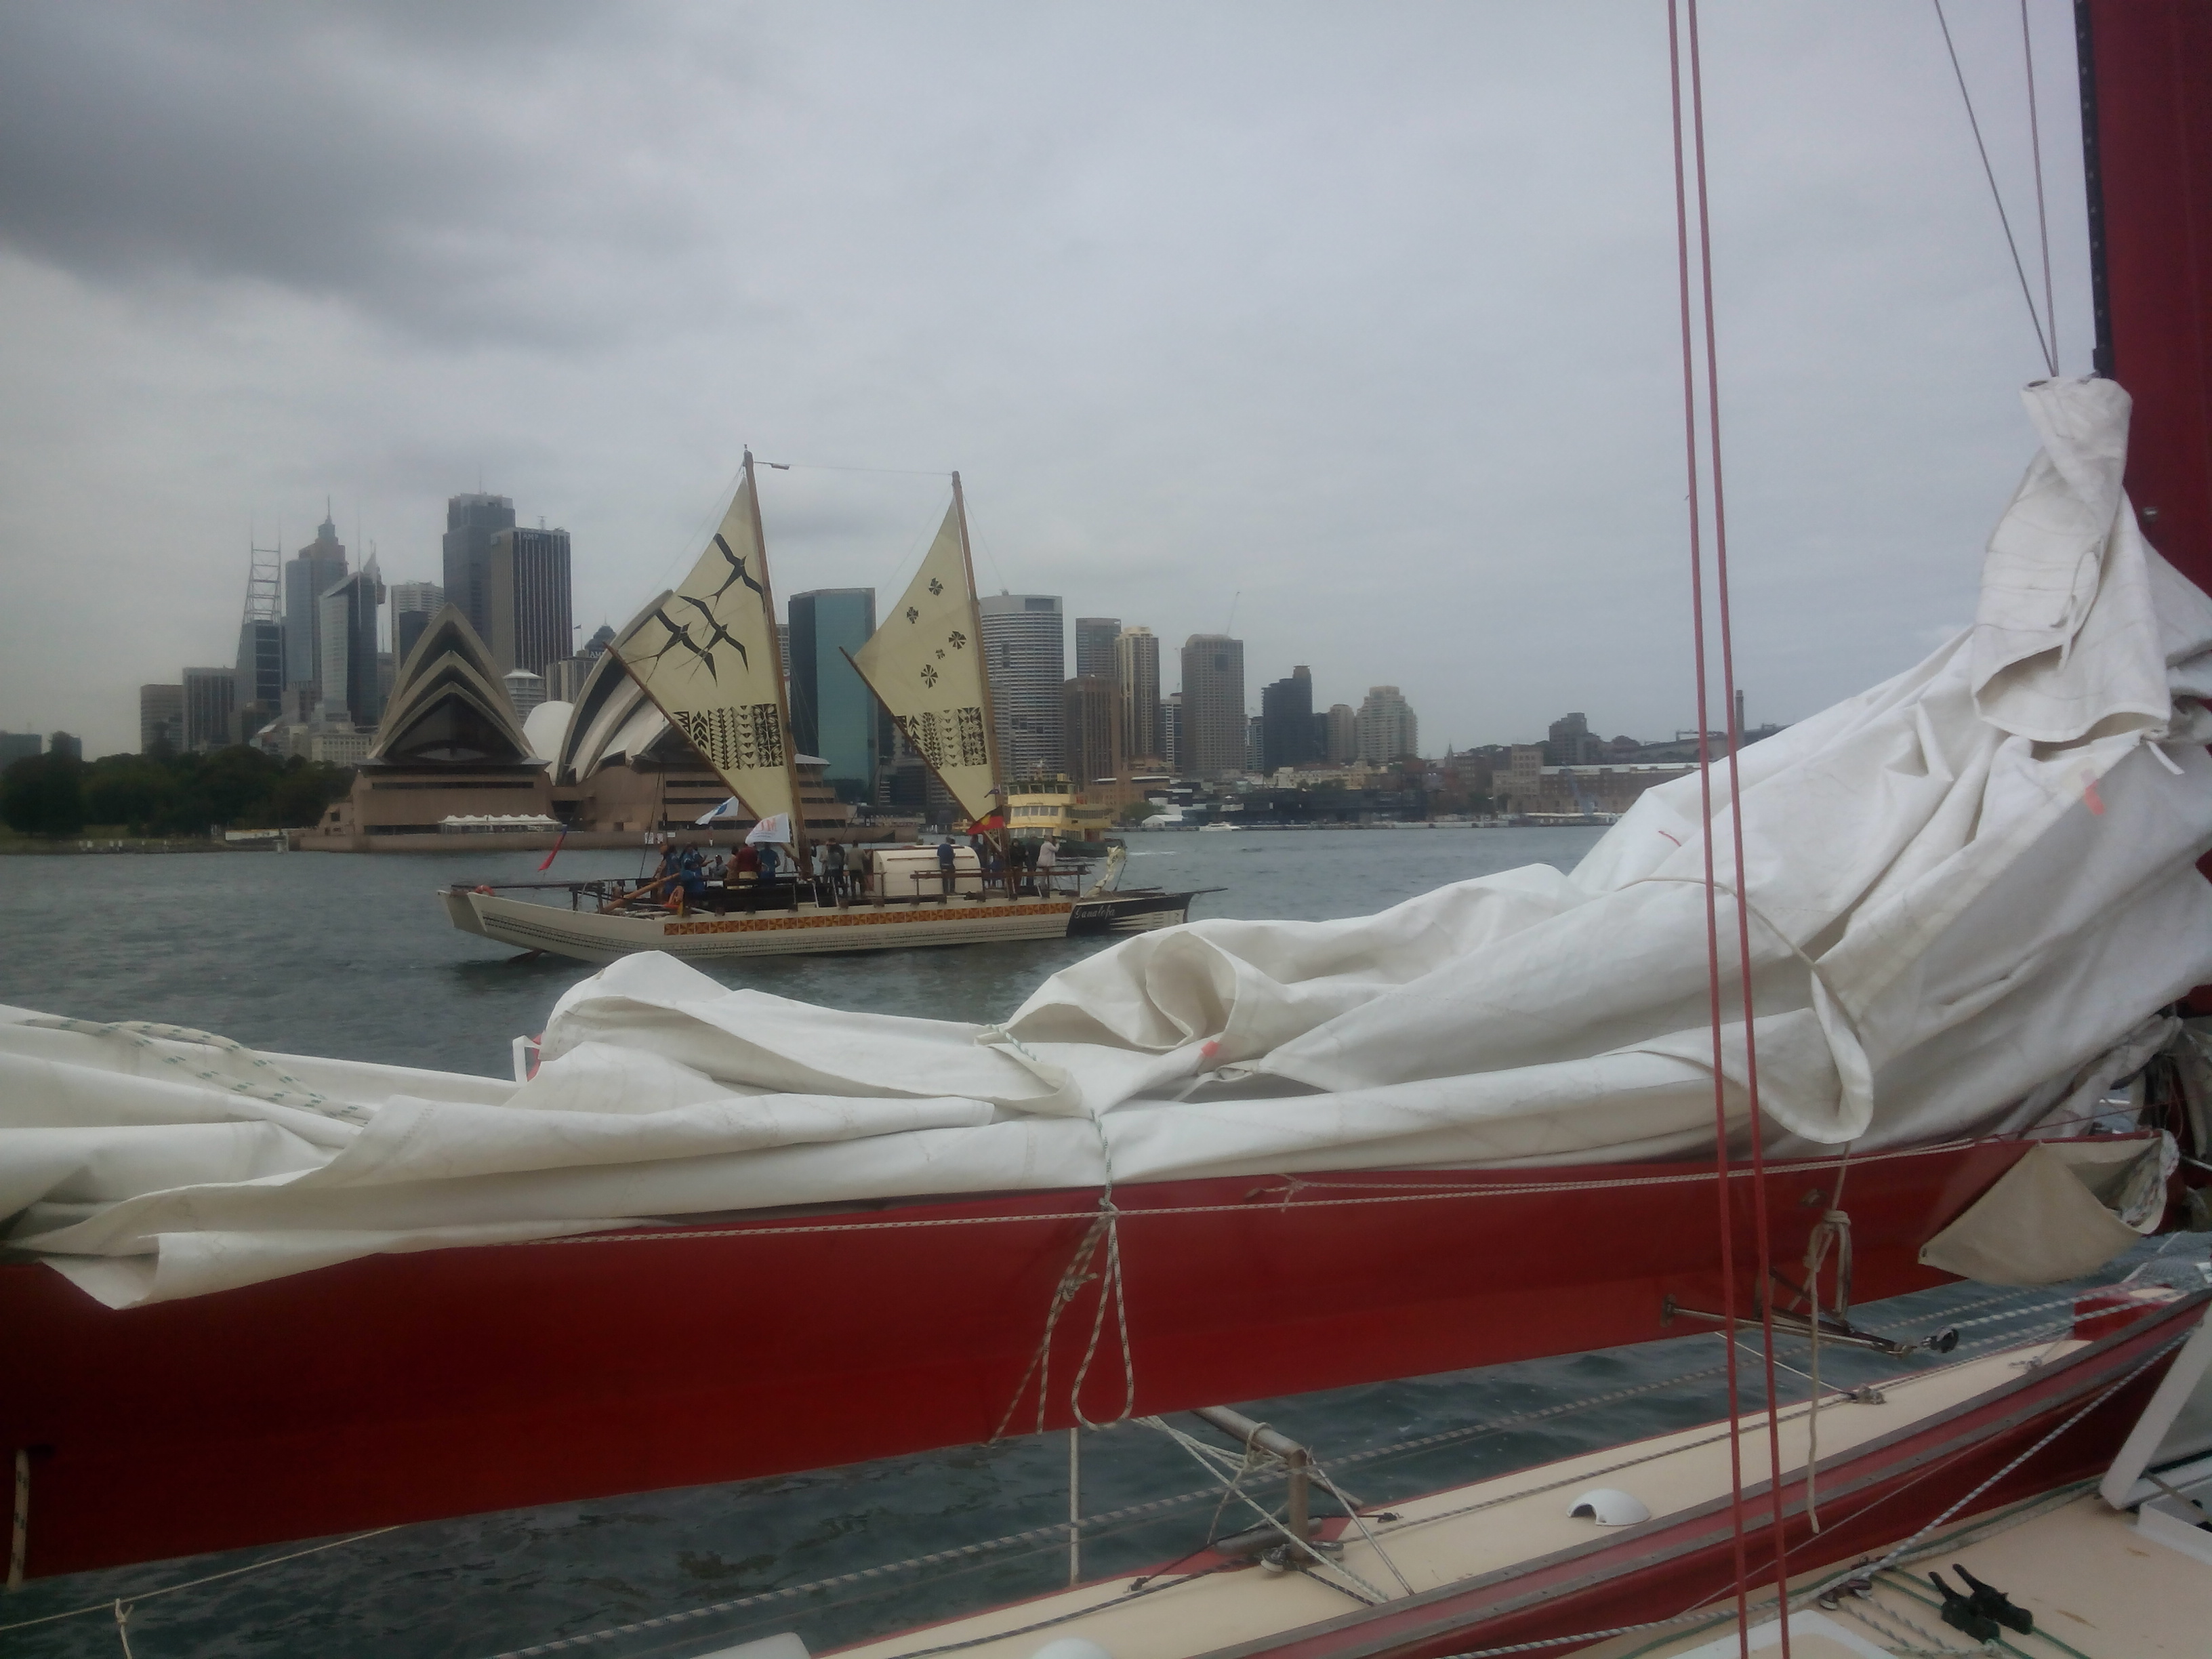 the arrival of the vaka's in sydney